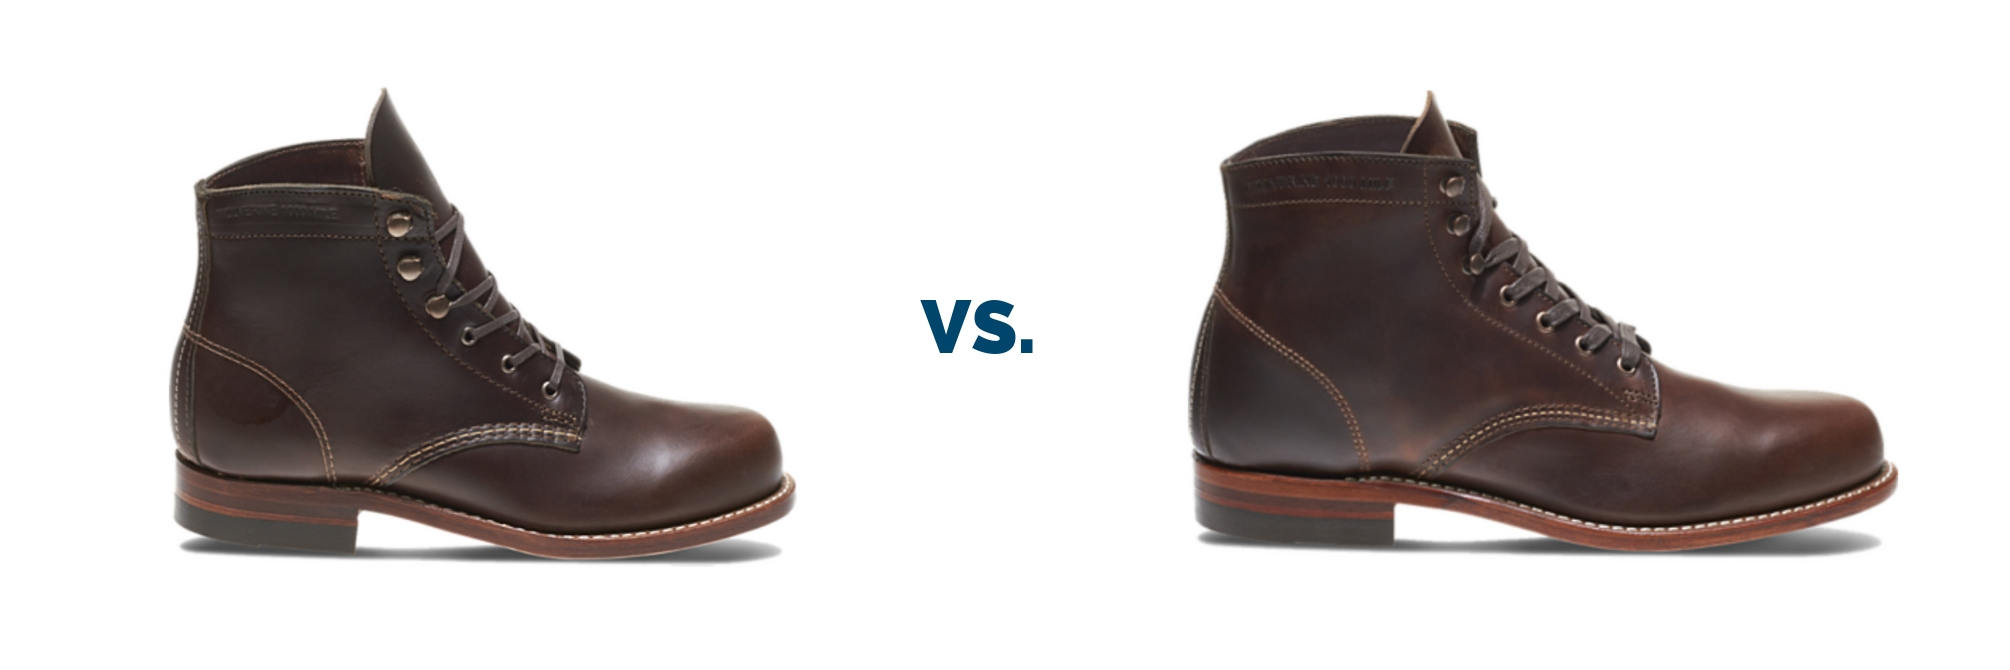 Wolverine 1000 Mile Boots mens vs womens